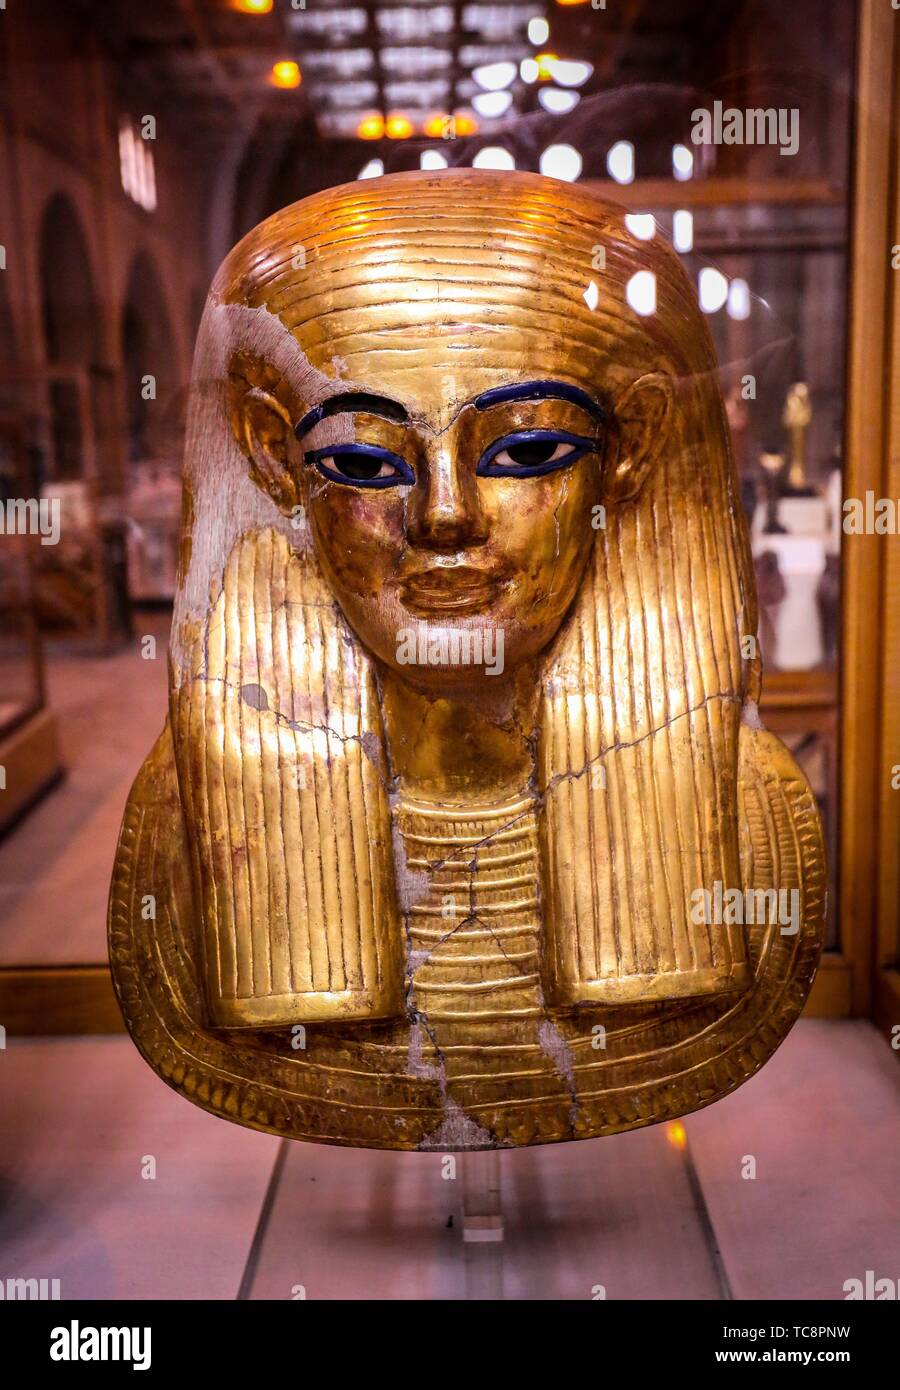 Egypt, Cairo, Egyptian Museum, from the tomb of Yuya and Thuya in Luxor : Gilded mask of Yuya, made of cloth and plaster. Stock Photo